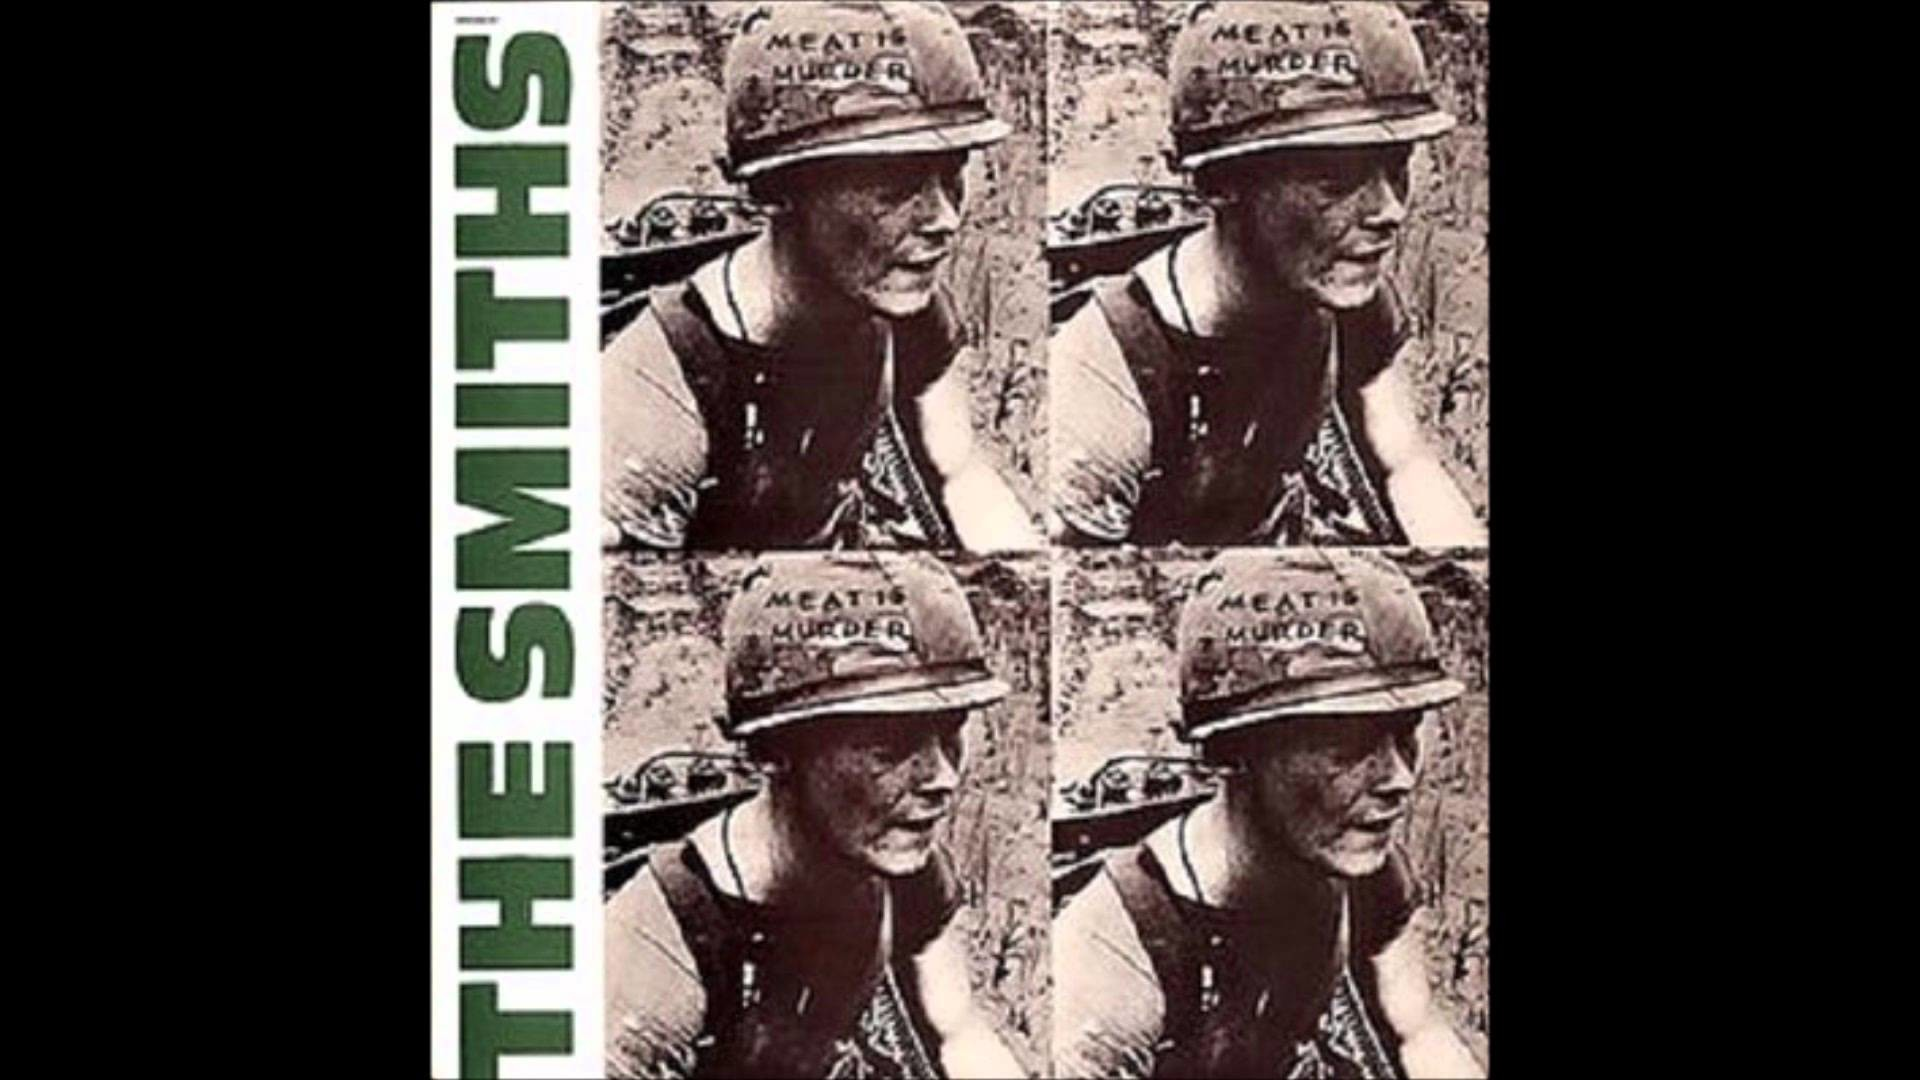 THE SMITHS – Heaven Knows I'm Miserable Now